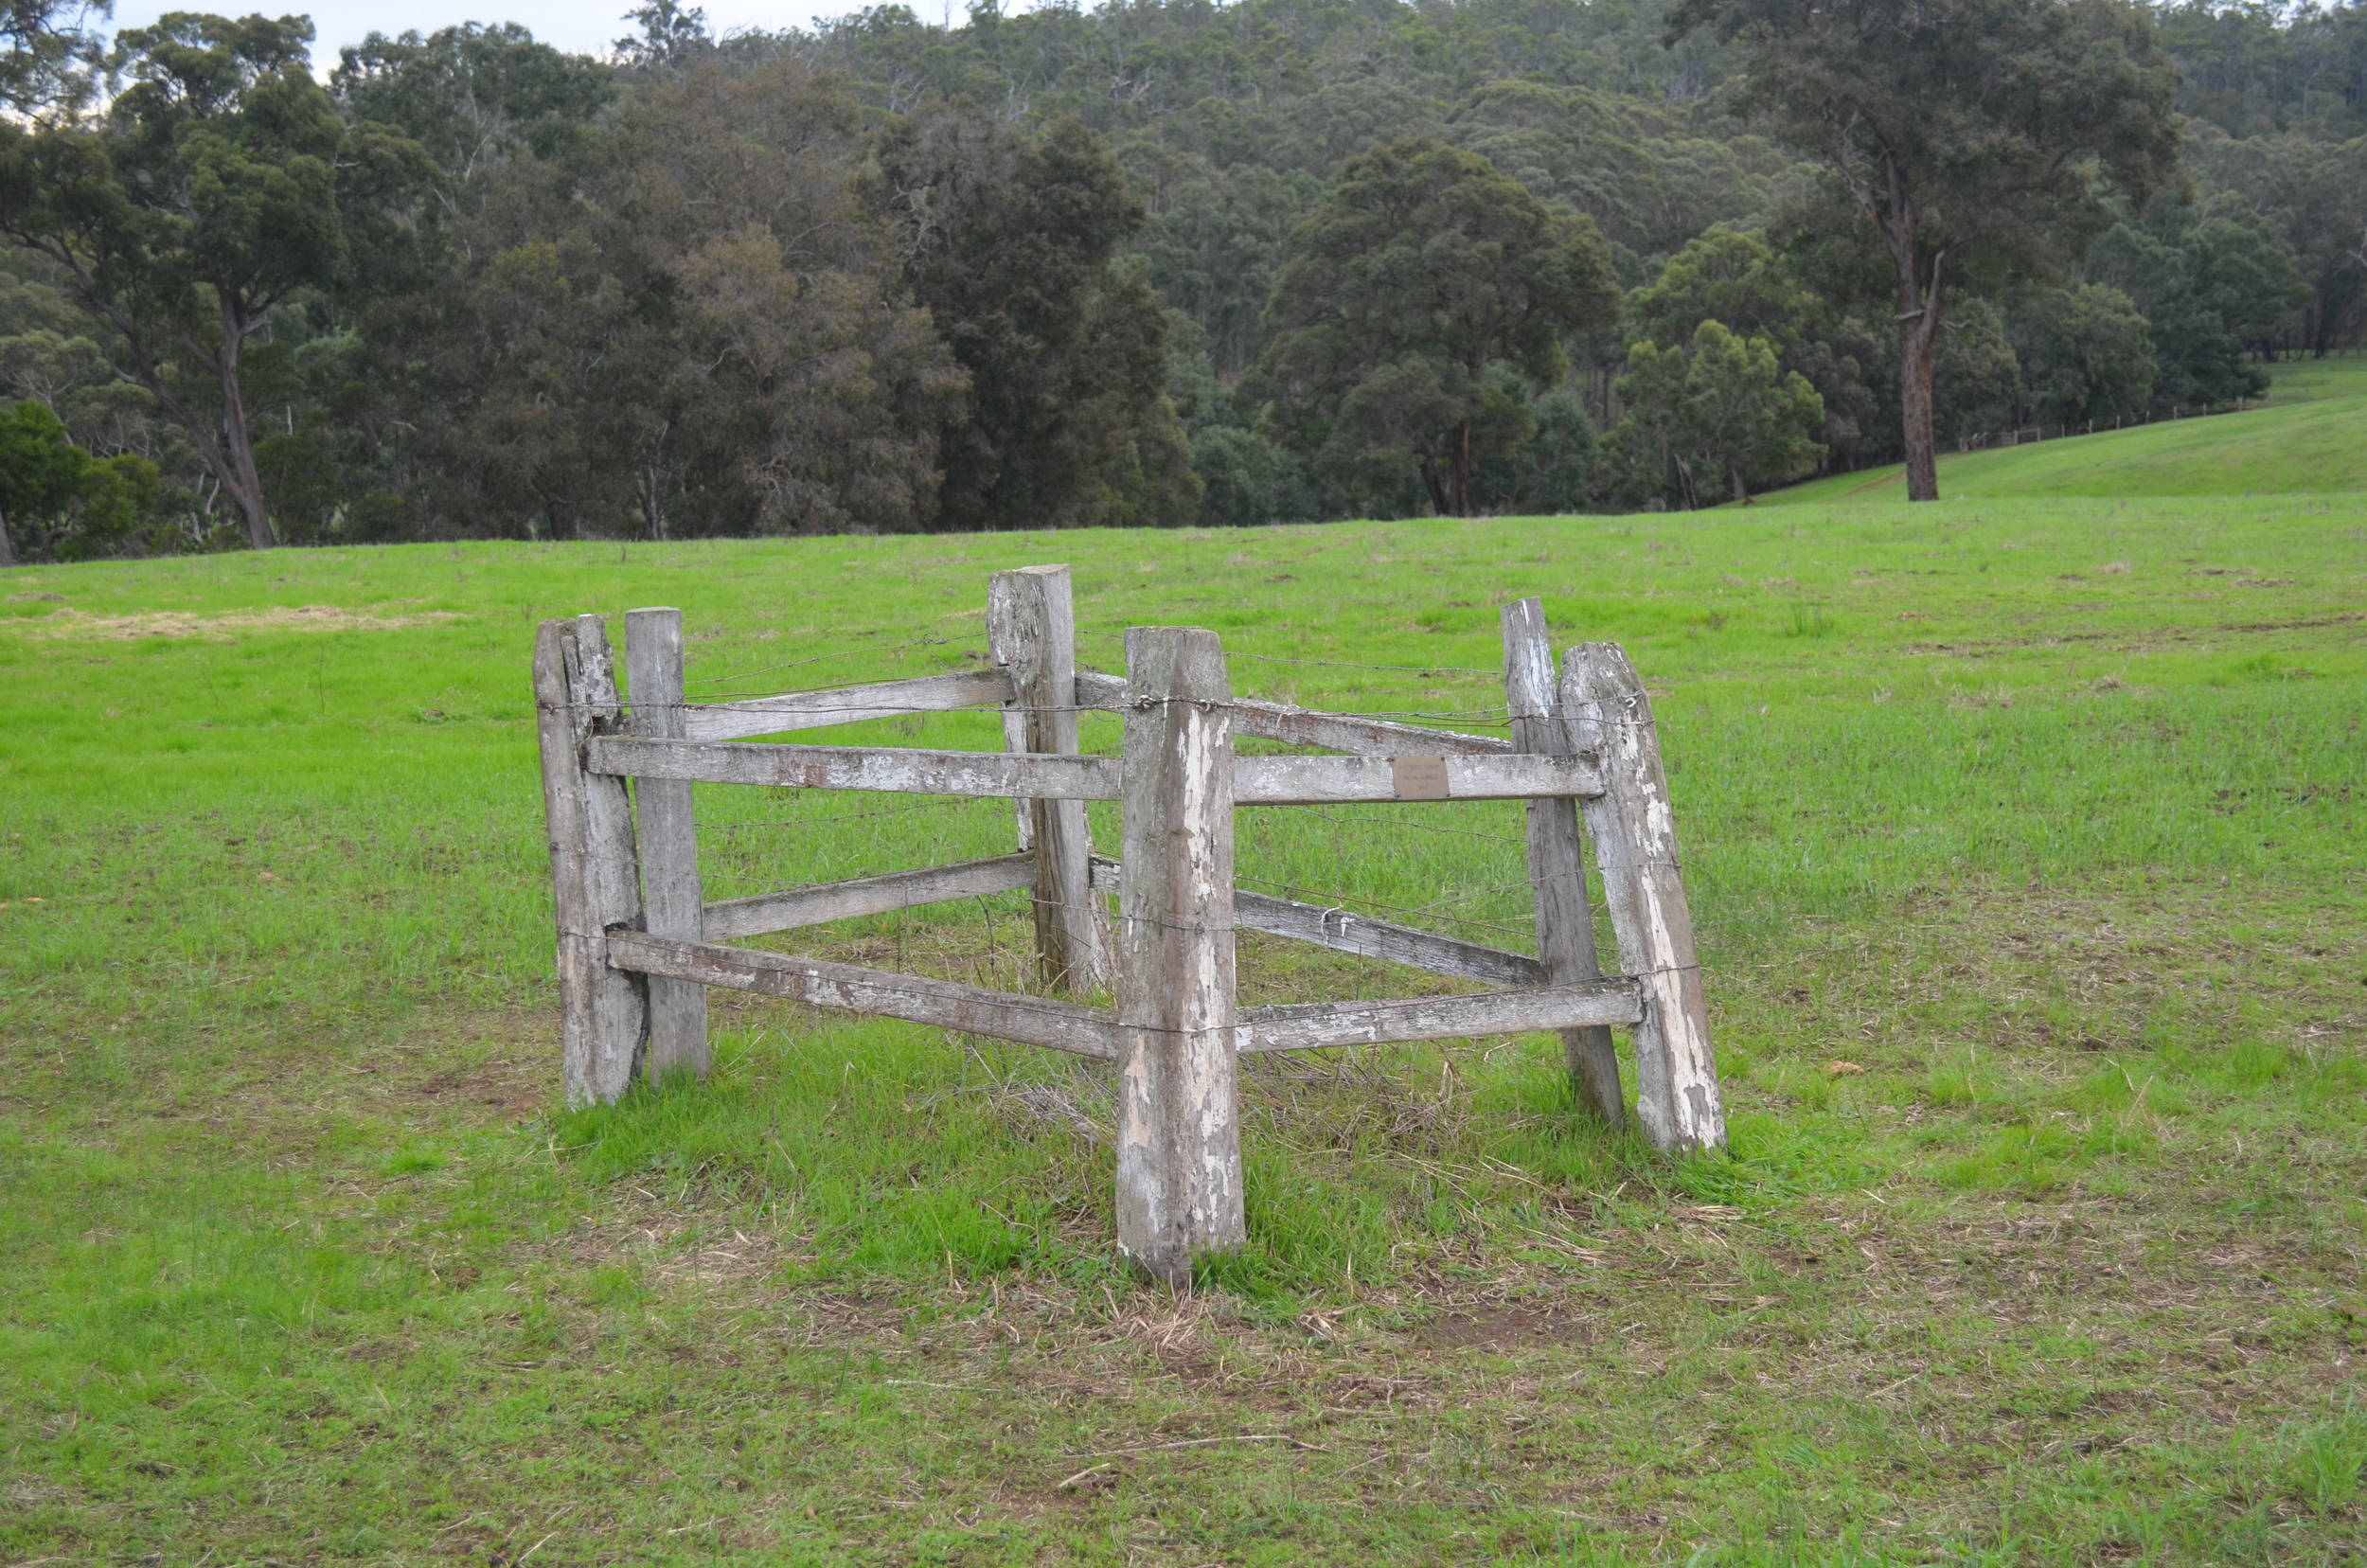 Herman Singh's cremation site is still kept clearly identified on the Muir family's farm. In the middle of a paddock, this site is left undisturbed even while farming activities continue all around.